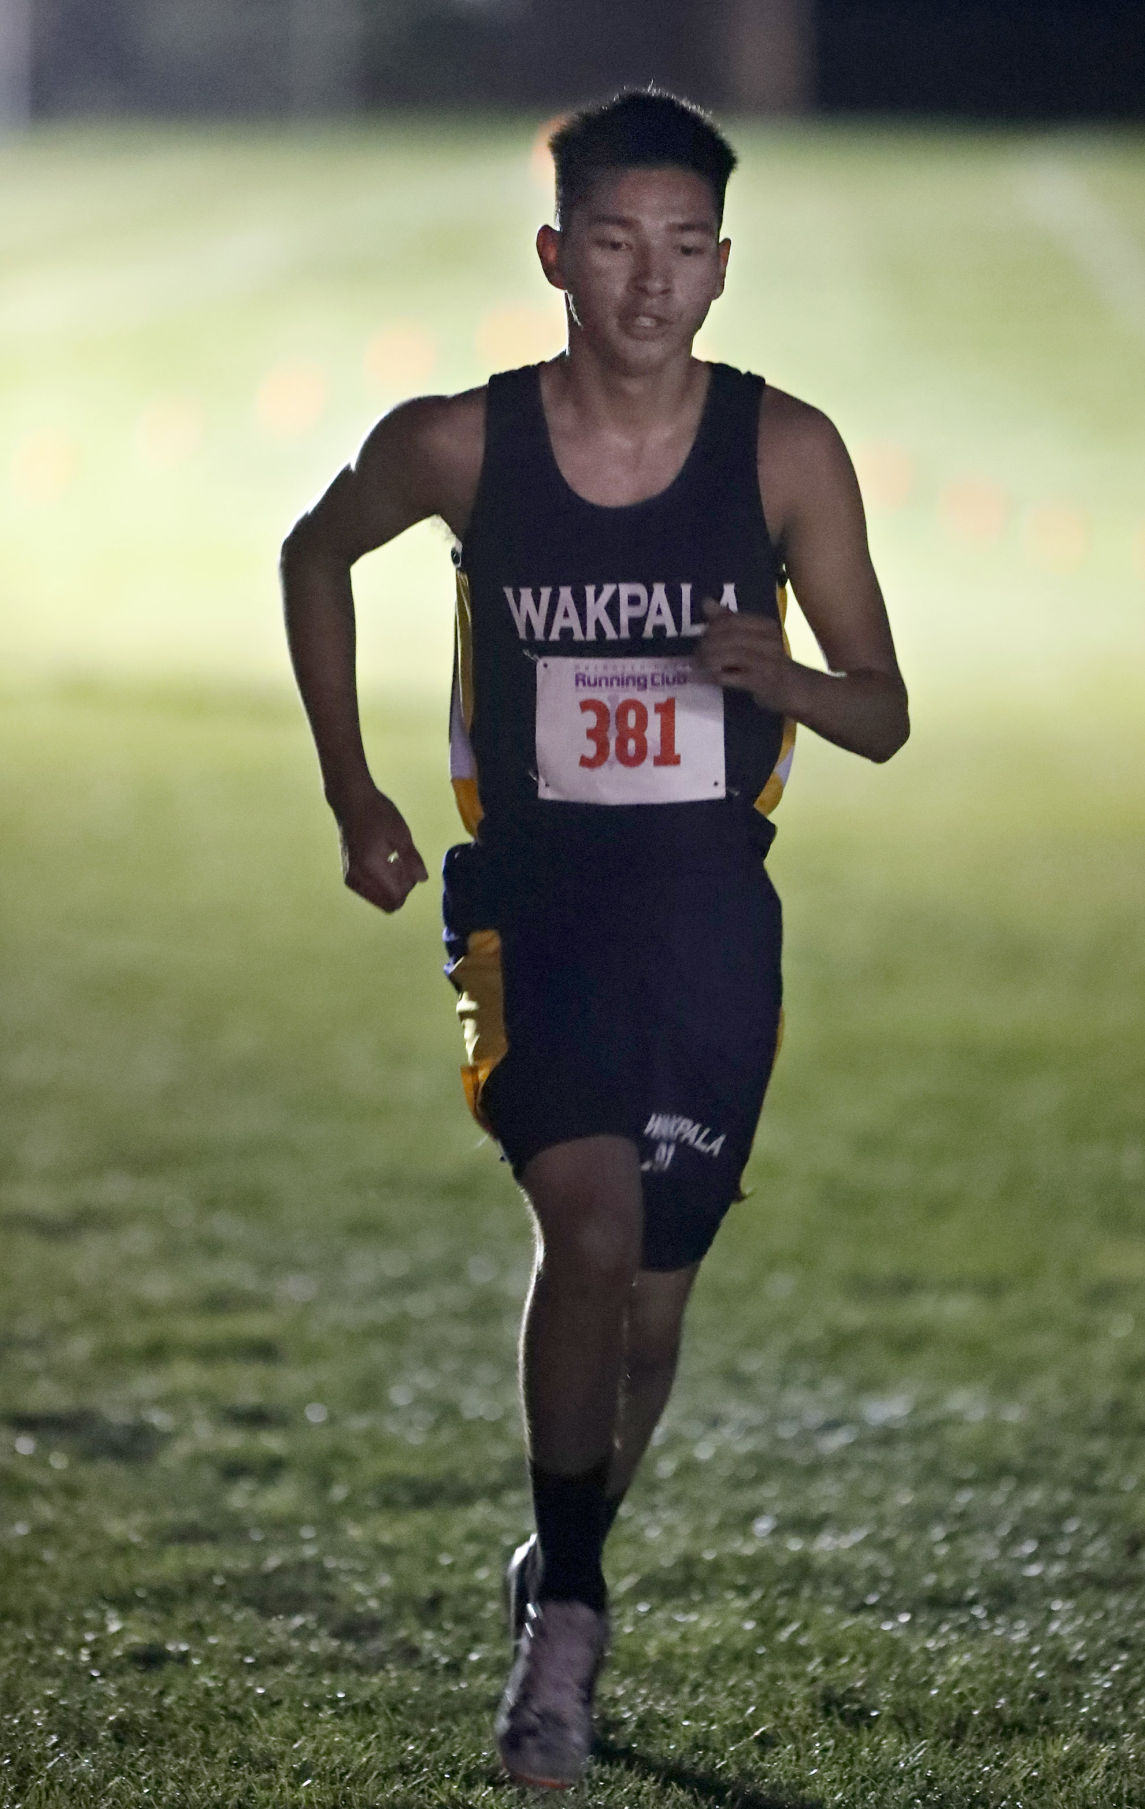 Rhaecine Sam - The Wakpala junior is prequalified in the Class B 1600 and 3200 meters for the Sioux track team.